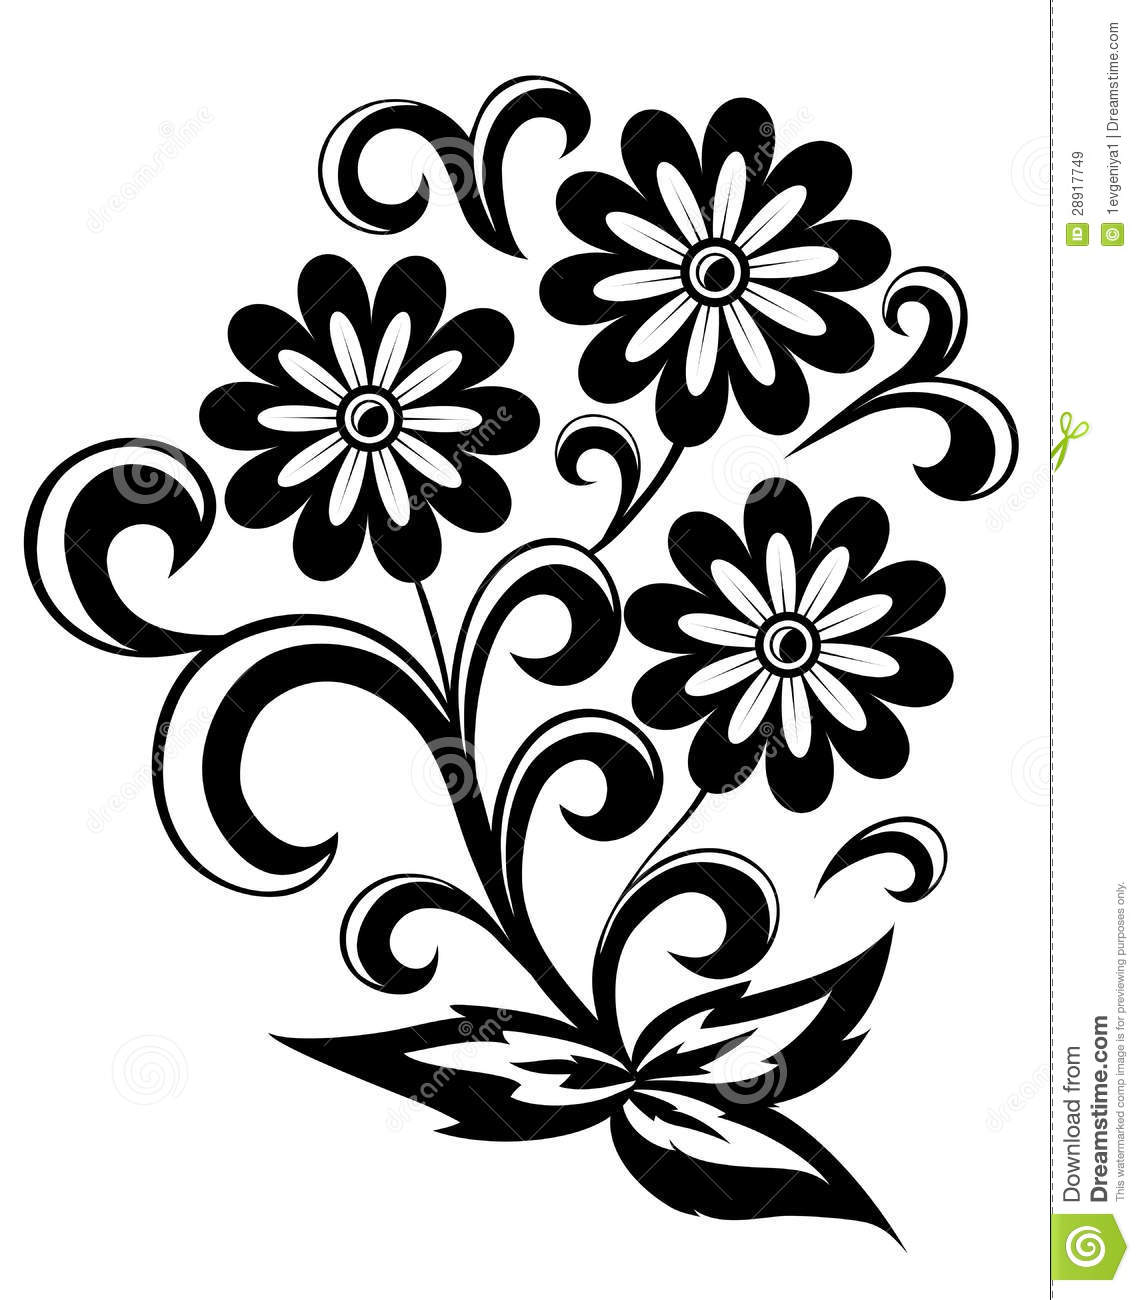 Black Flower On White Background Royalty Free Stock: Black And White Abstract Flower With Leaves And Swirls